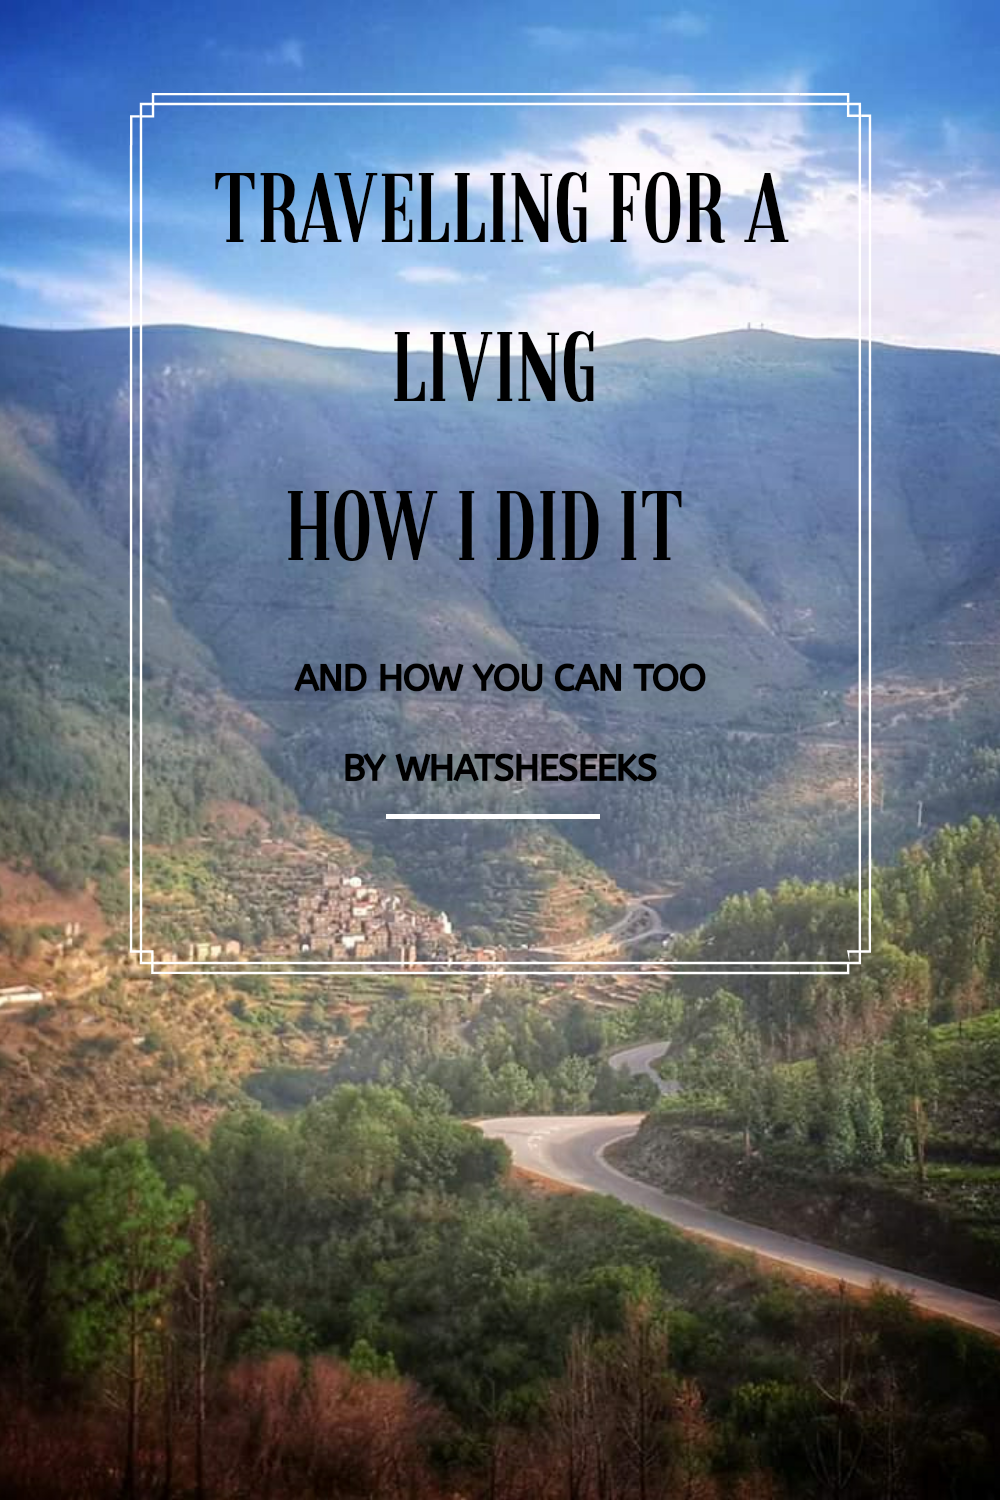 Do you want to quit your day job and make a life out of travel? Have your dreams of working in far away destinations? Find out how you can travel more and live your dreams with my story. #whatsheseeks